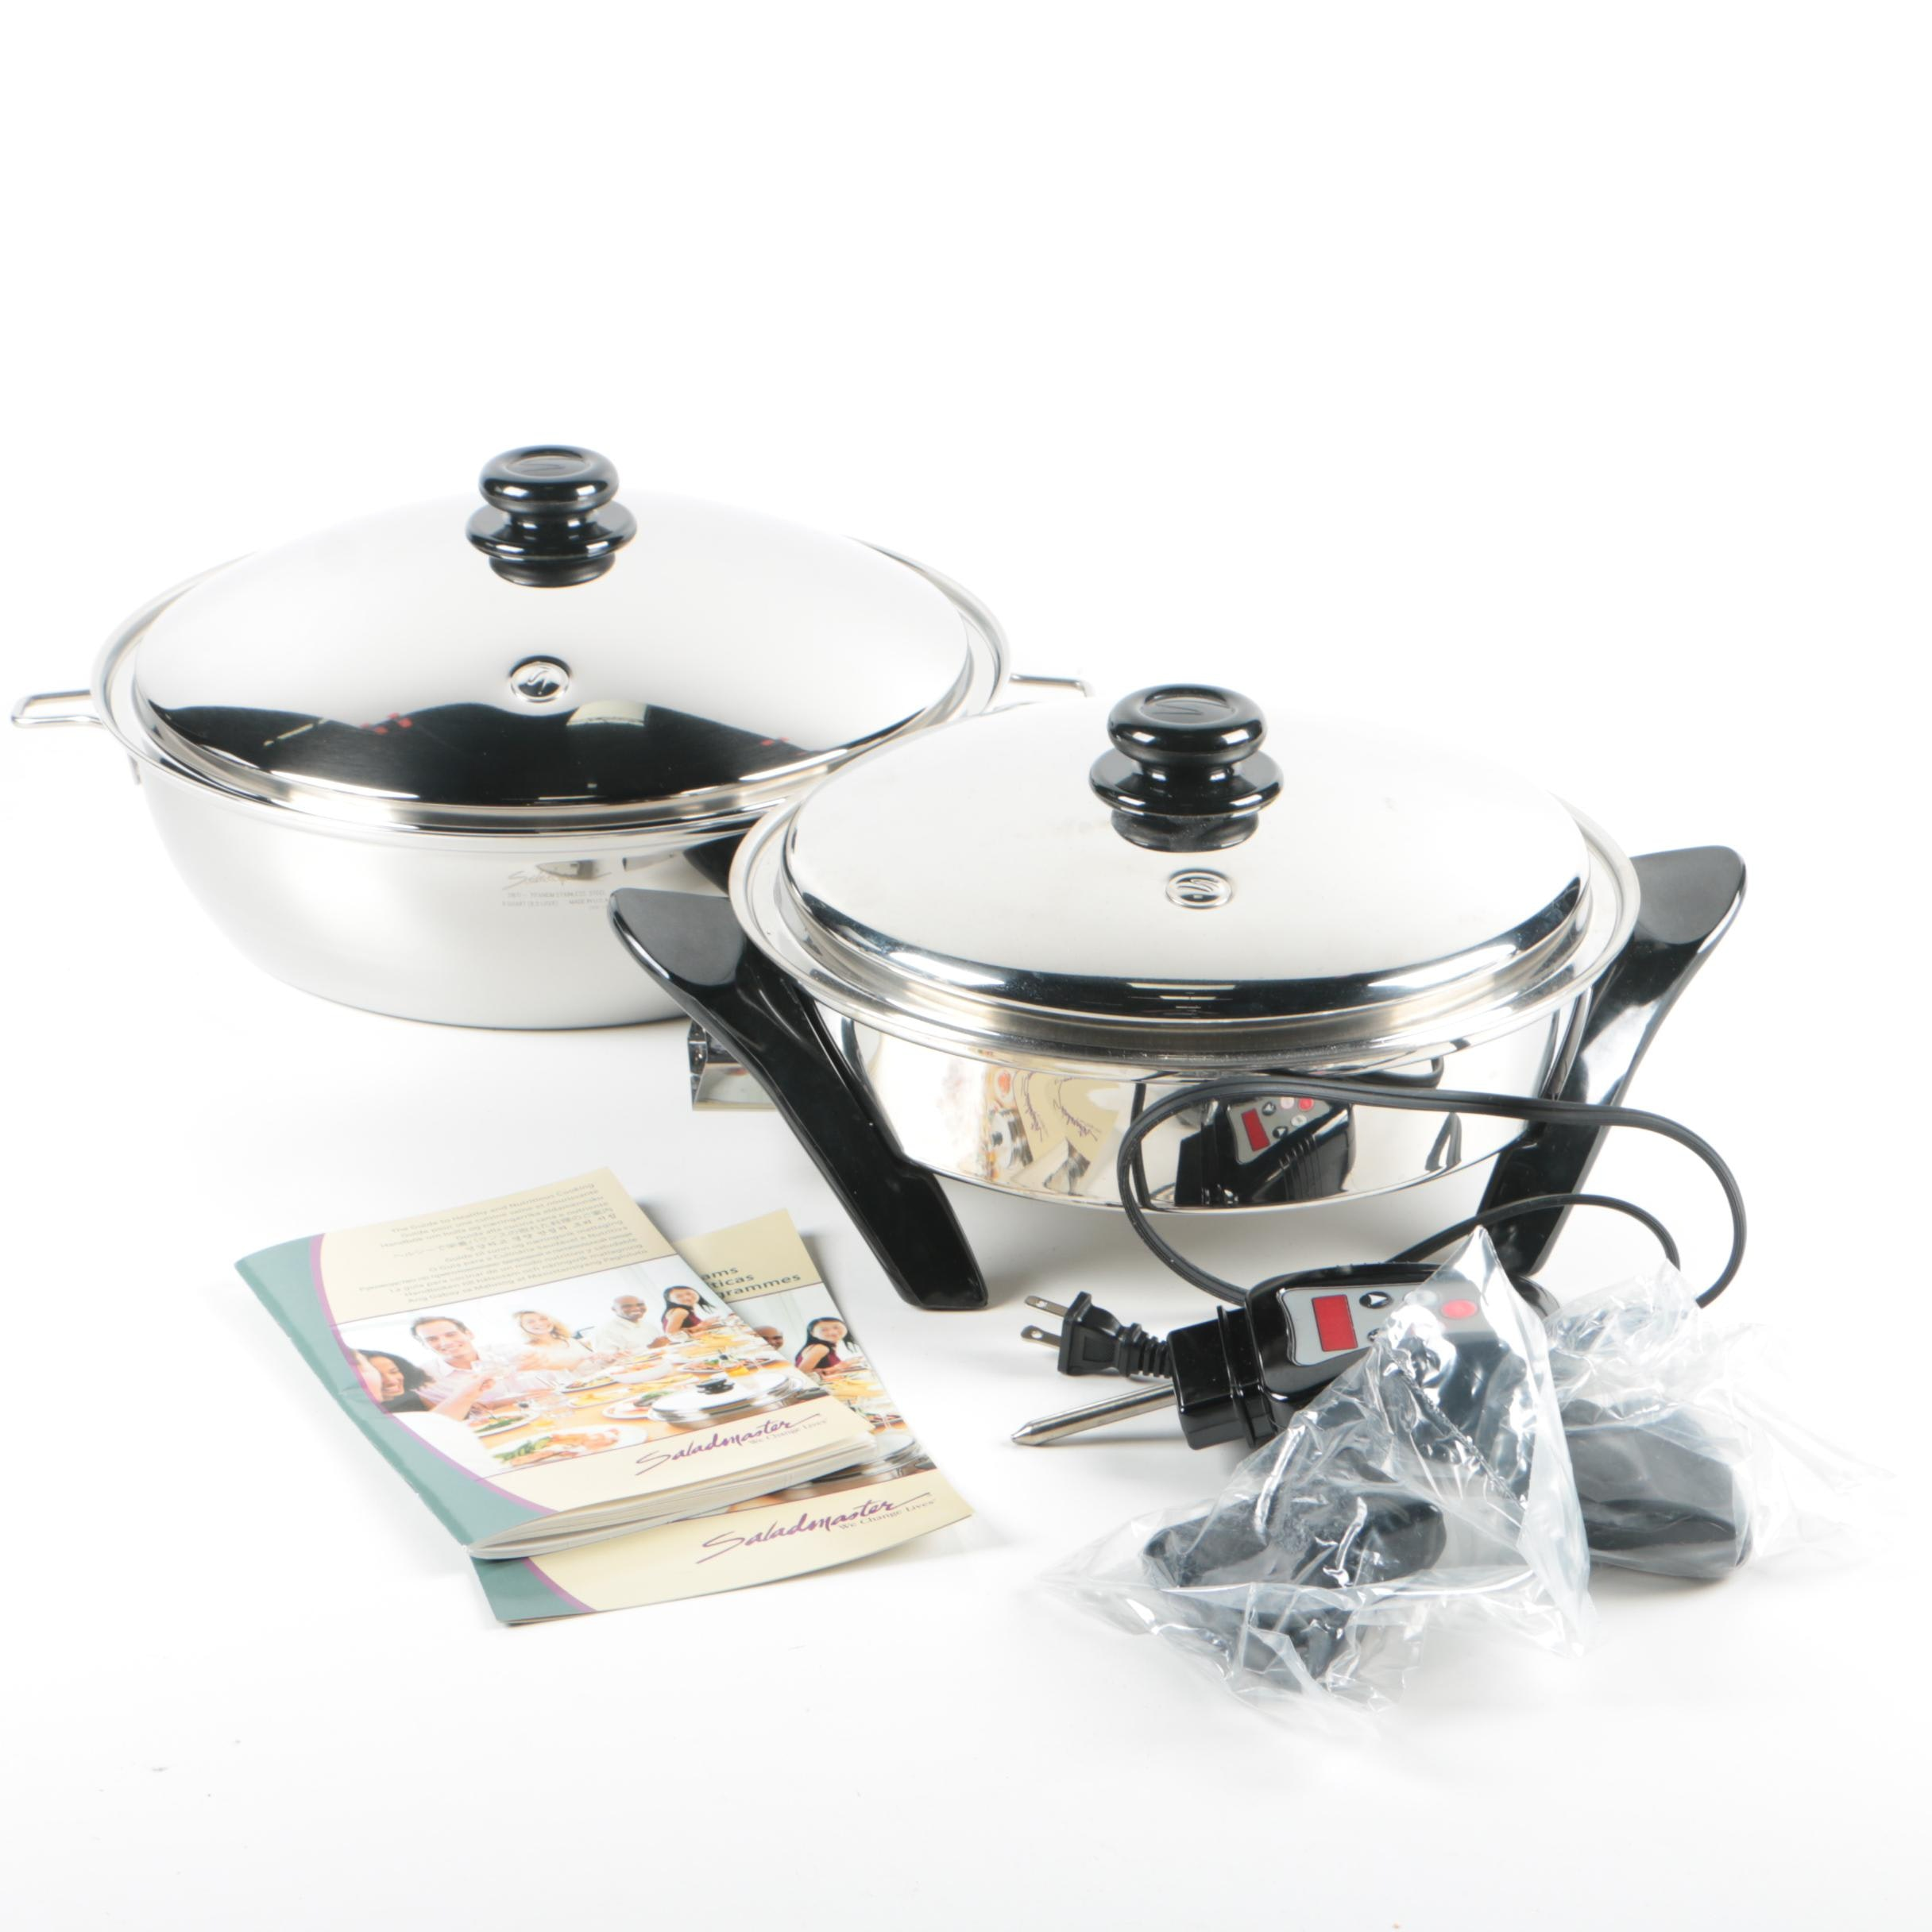 Saladmaster Stainless Steel Cooking System